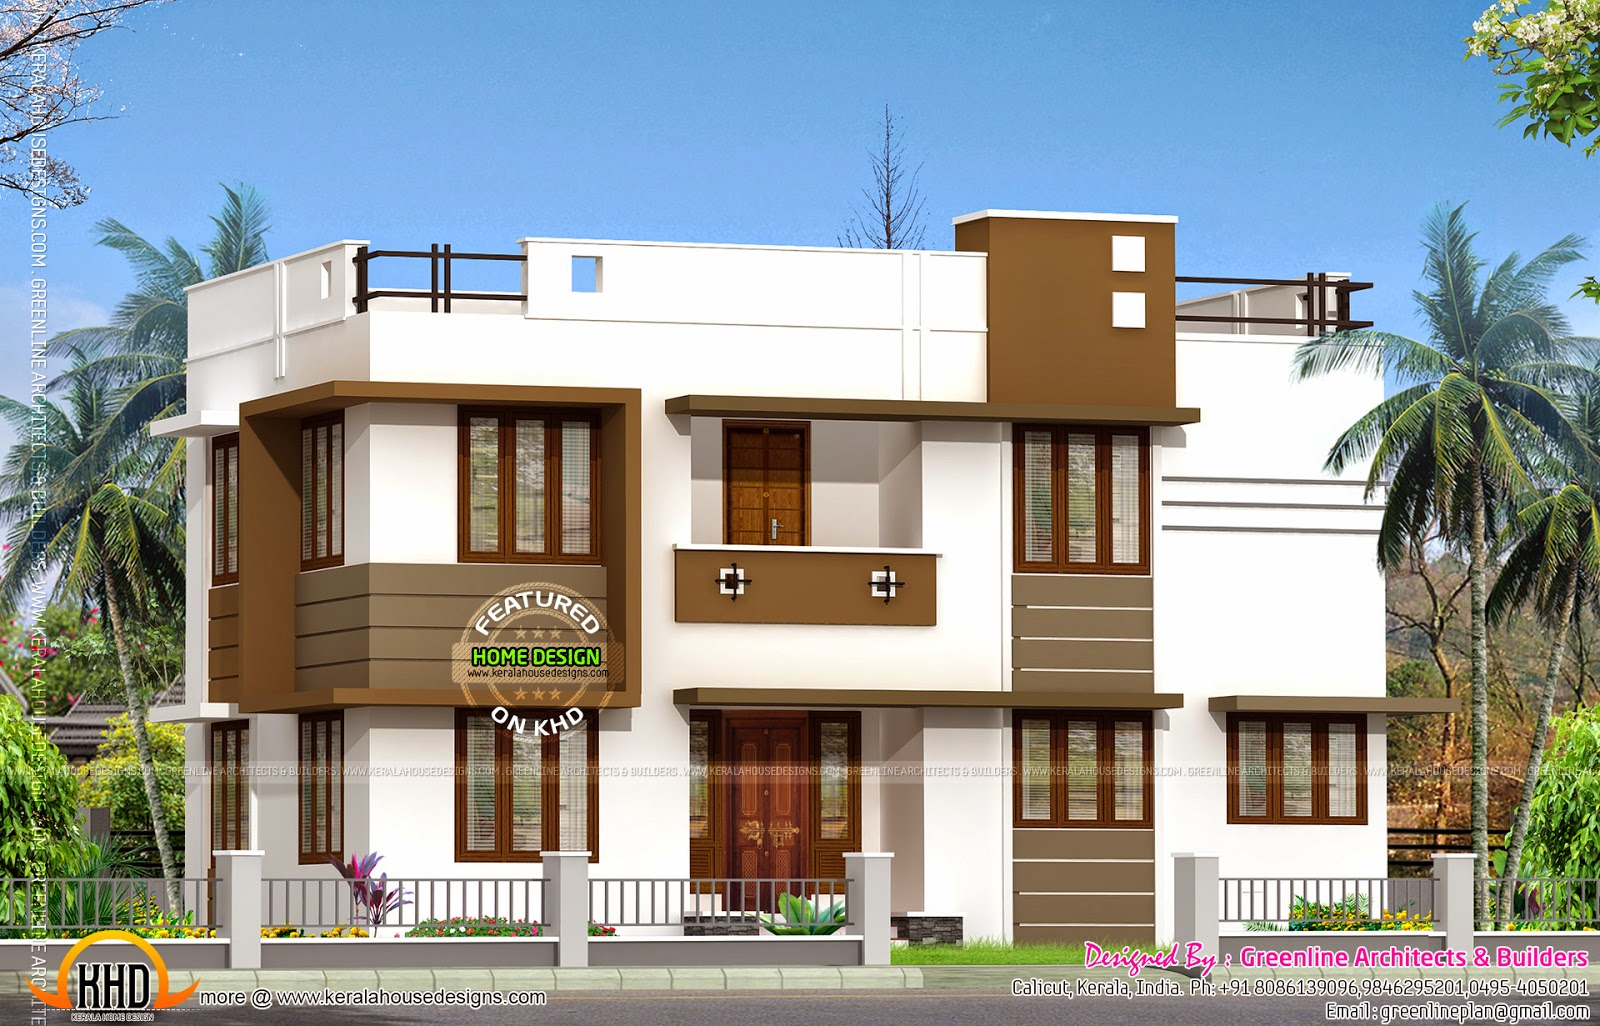 Low budget double storied house kerala home design and Estimate cost of house